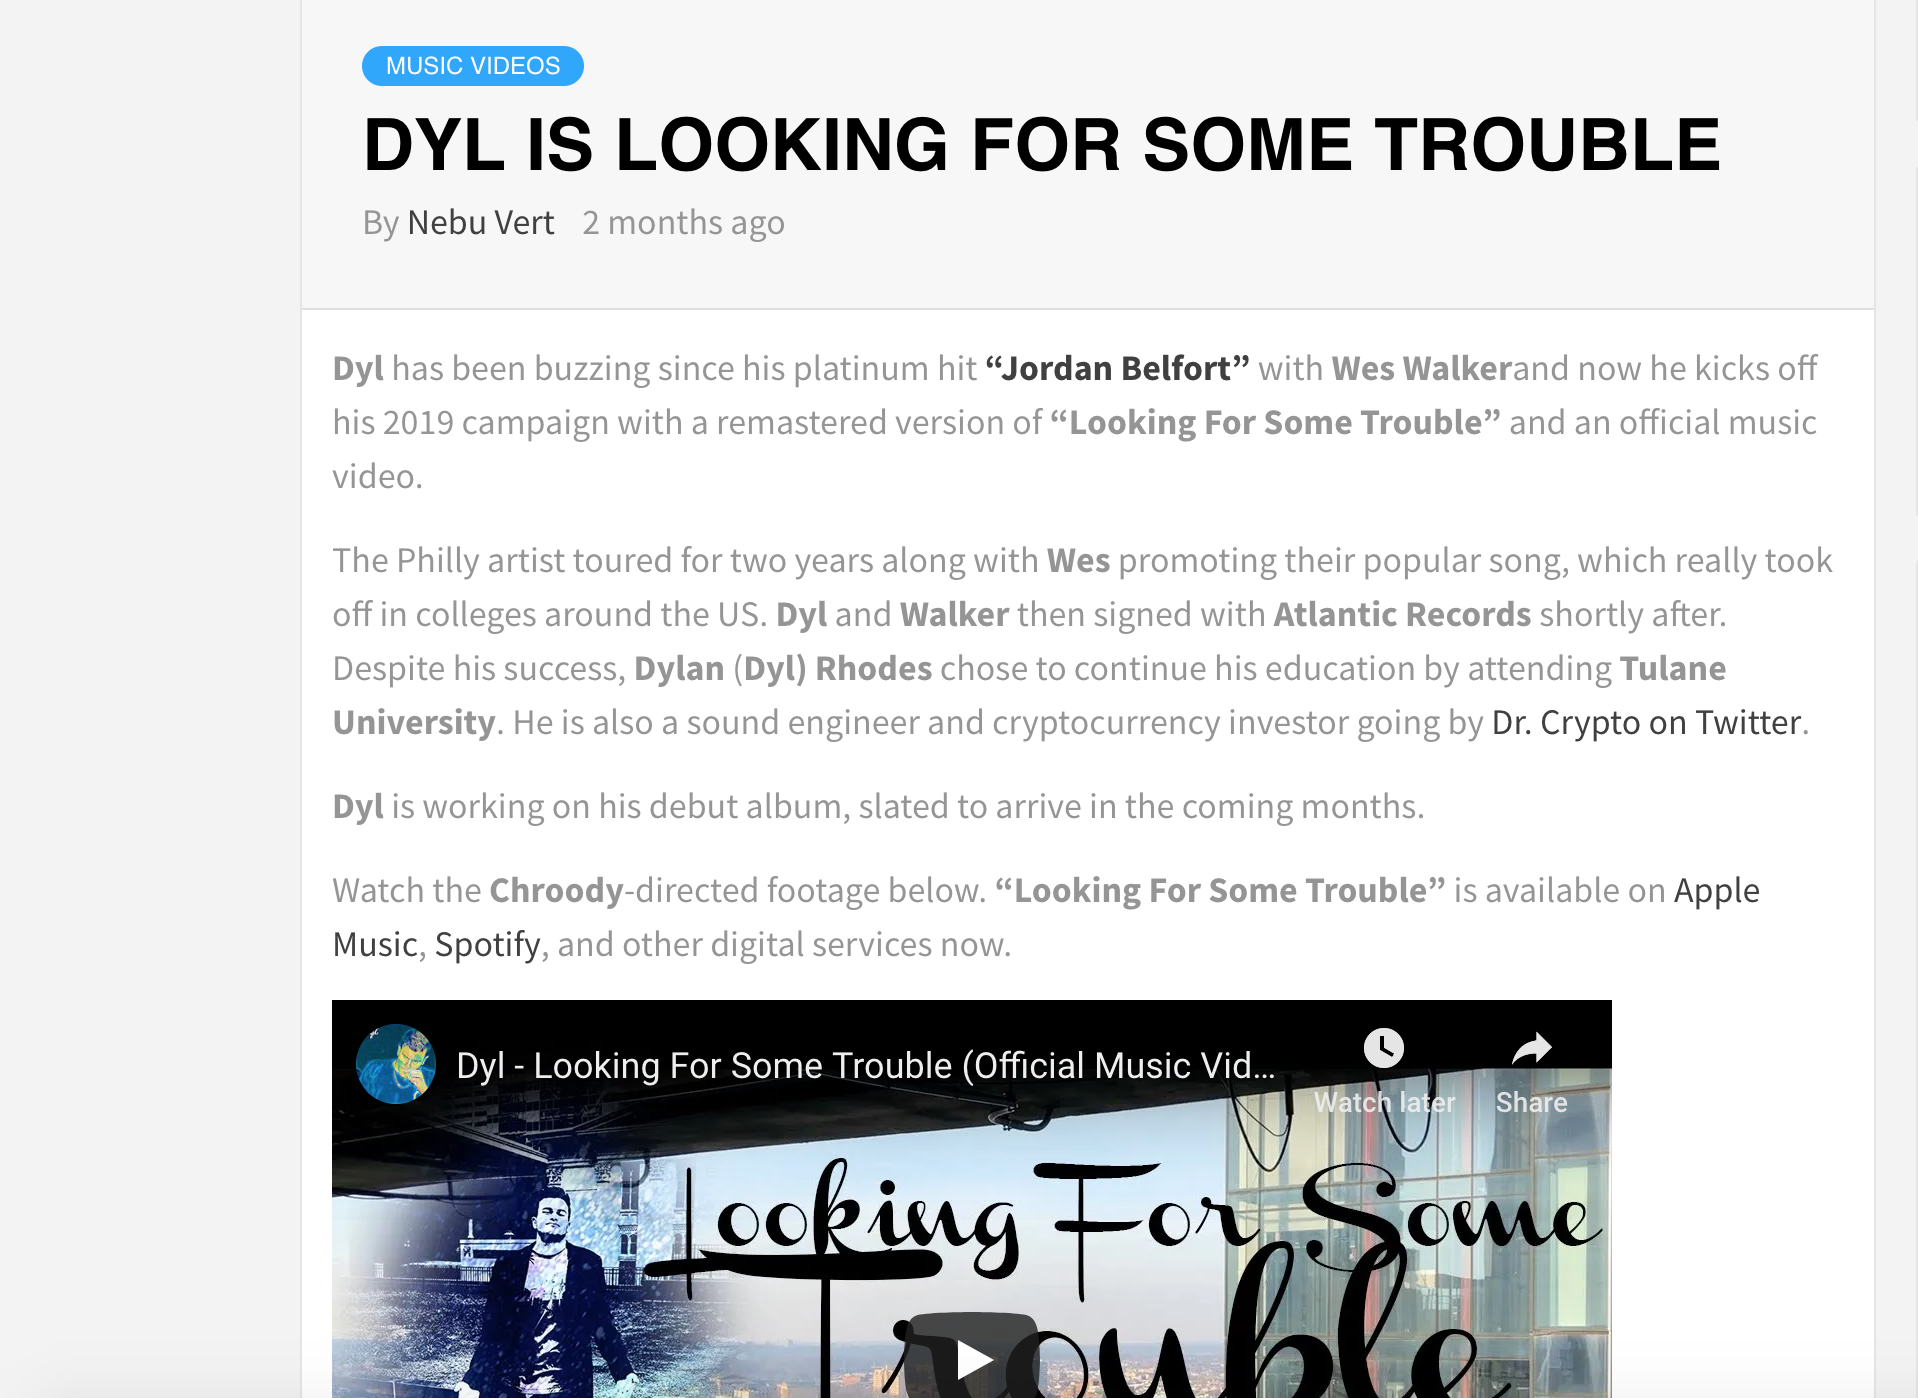 Dyl Looking For Some Trouble Press Release